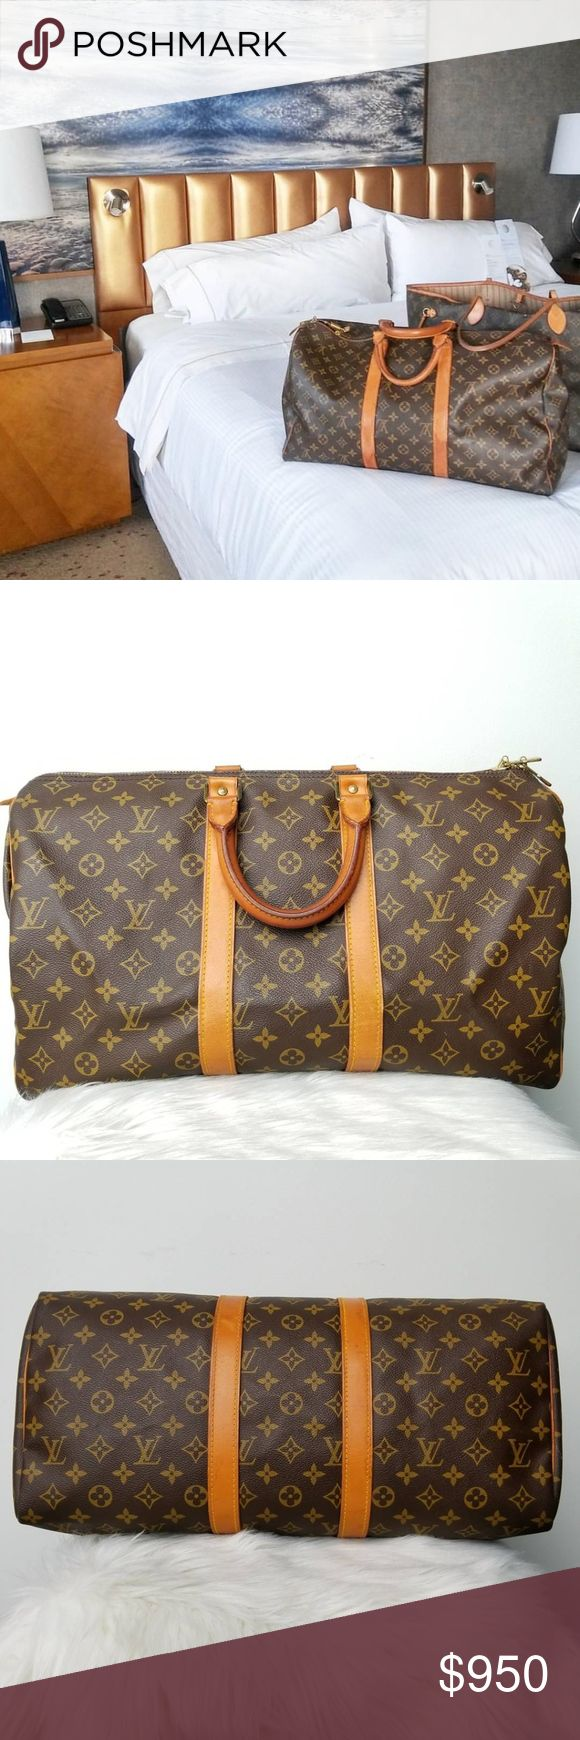 AUTHENTIC LOUIS VUITTON MONOGRAM KEEPALL 45 DUFFLE WE GUARANTEE ALL OUR ITEMS ARE 100% AUTHENTIC! Make other travelers jealous with this versatile Louis Vuitton Monogram Canvas Keepall 45 that is perfect for travel or a weekend getaway. With its ultra-spacious interior and the capability of folding flat, this bag is versatile as an additional travel piece.   Details:  Brand: Louis Vuitton Model: Keepall 45 Retail: $1350 Style: Travel Bag Material: Monogram Canvas Color: Brown Made: France…